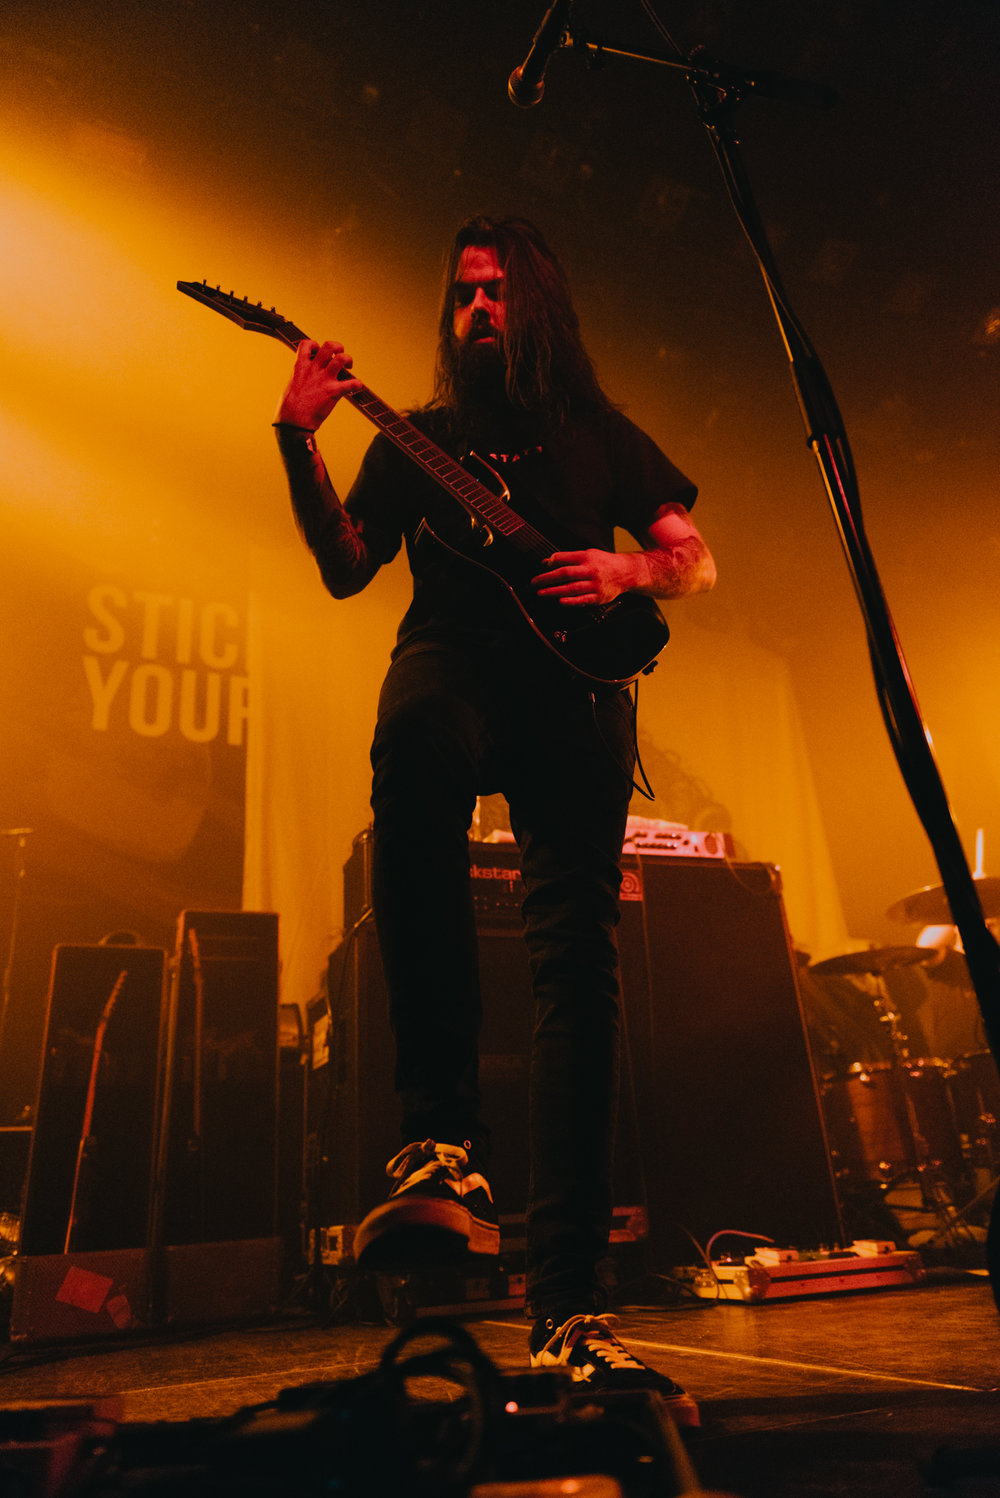 20161018-bury tomorrow-2402.jpg